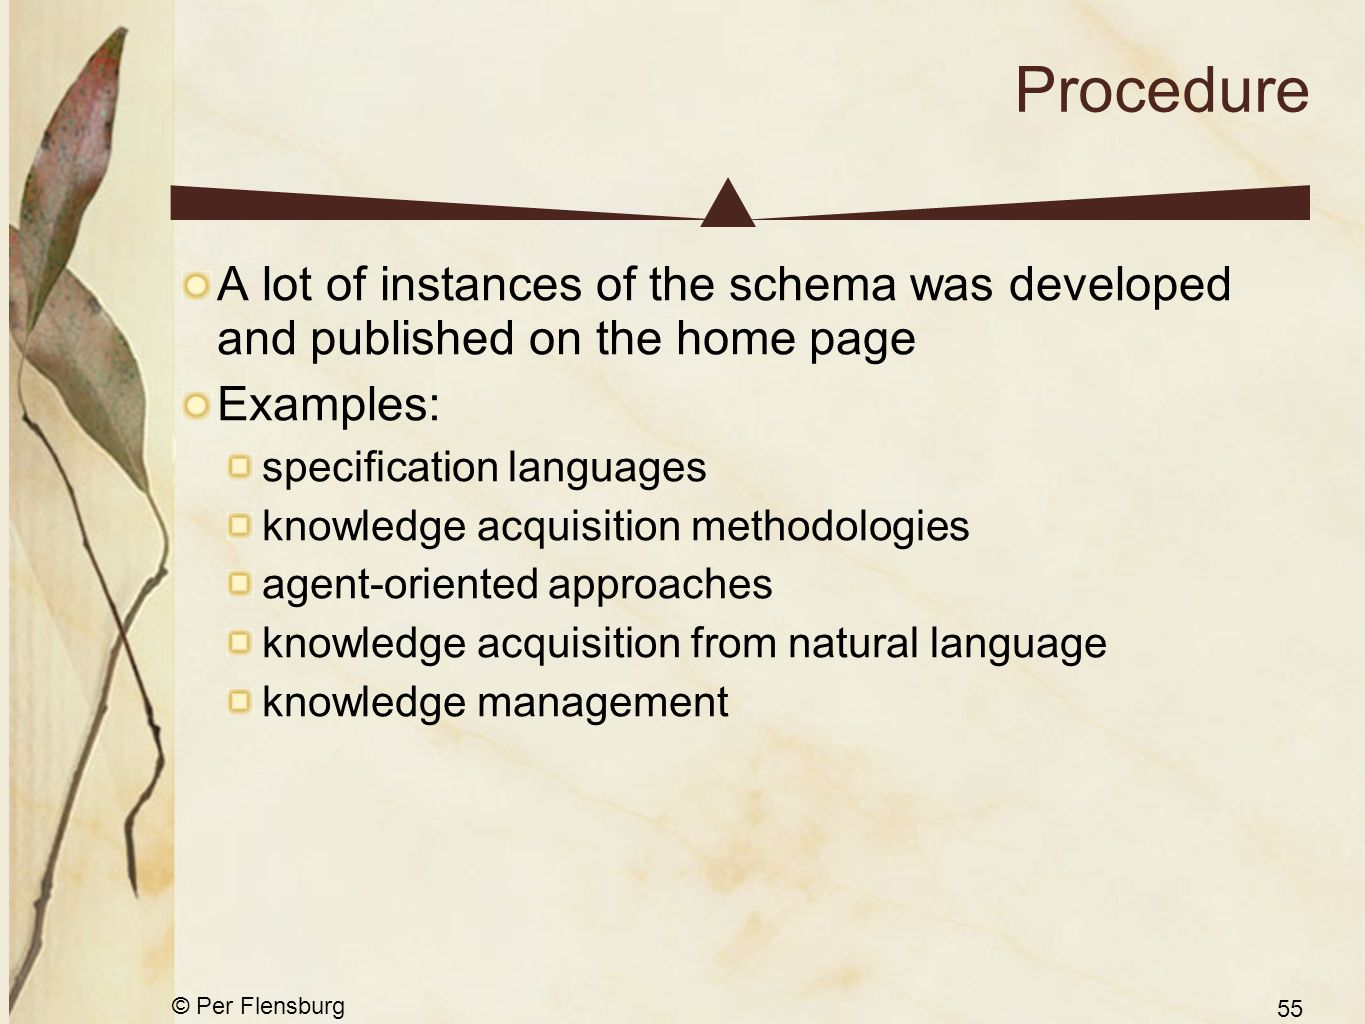 © Per Flensburg 55 Procedure A lot of instances of the schema was developed and published on the home page Examples: specification languages knowledge